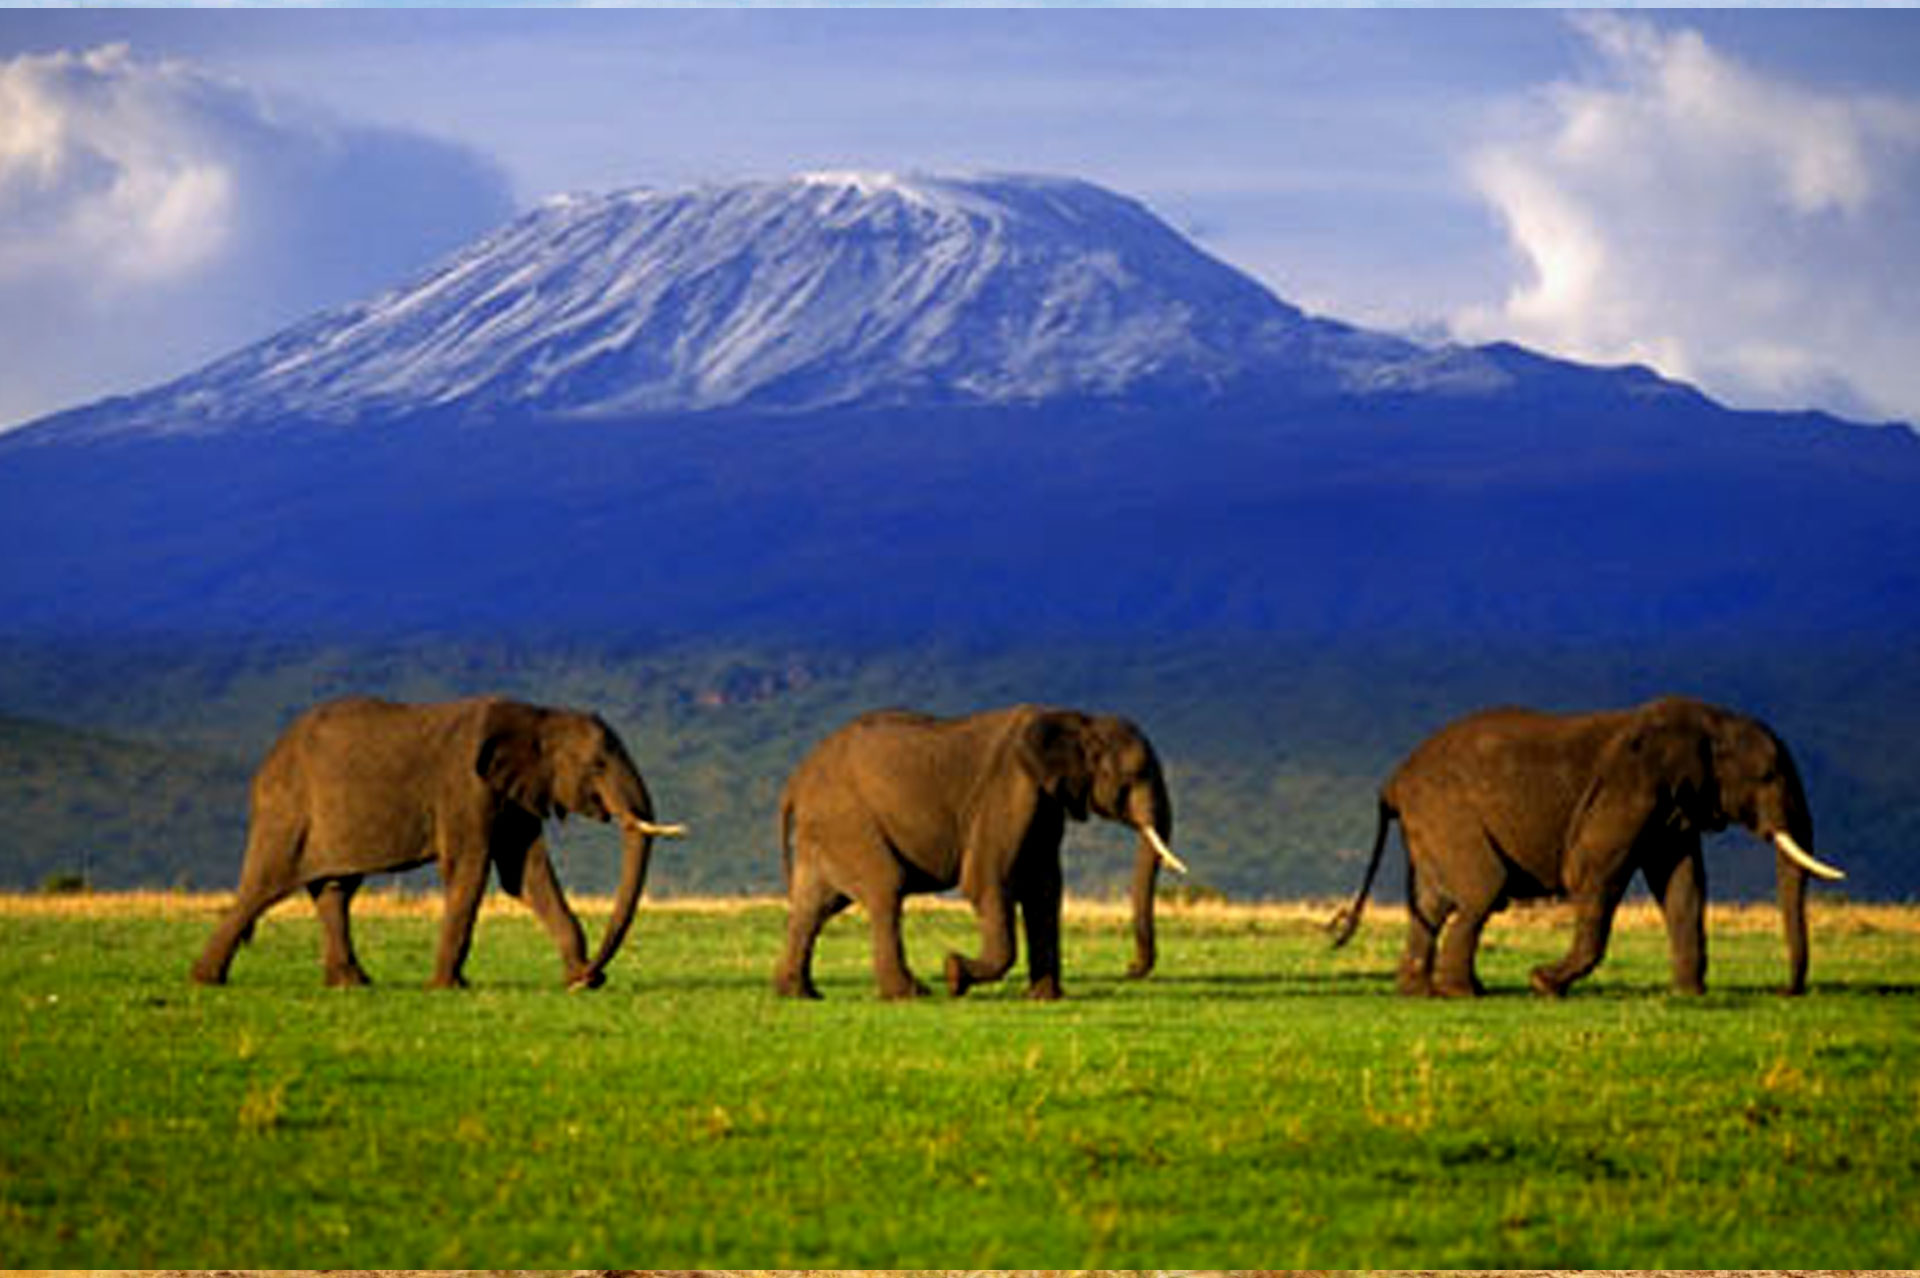 Diani_travel_center_National_Parks_in_Kenya_Amboseli_National_park_image_3